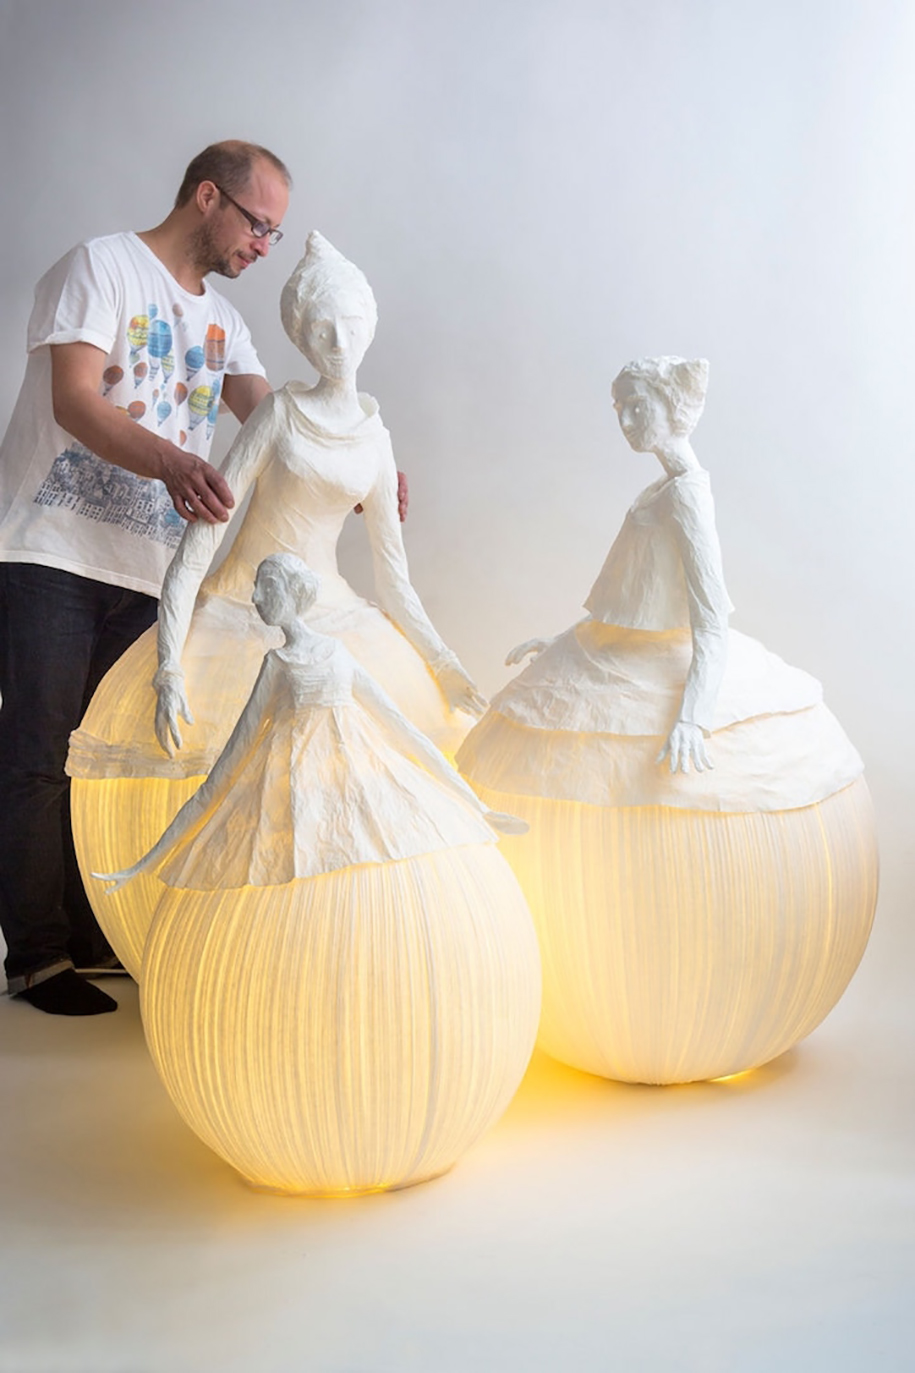 Ultra Elegant Paper Lamp Sculptures Illuminate The Room With Style SZ-88